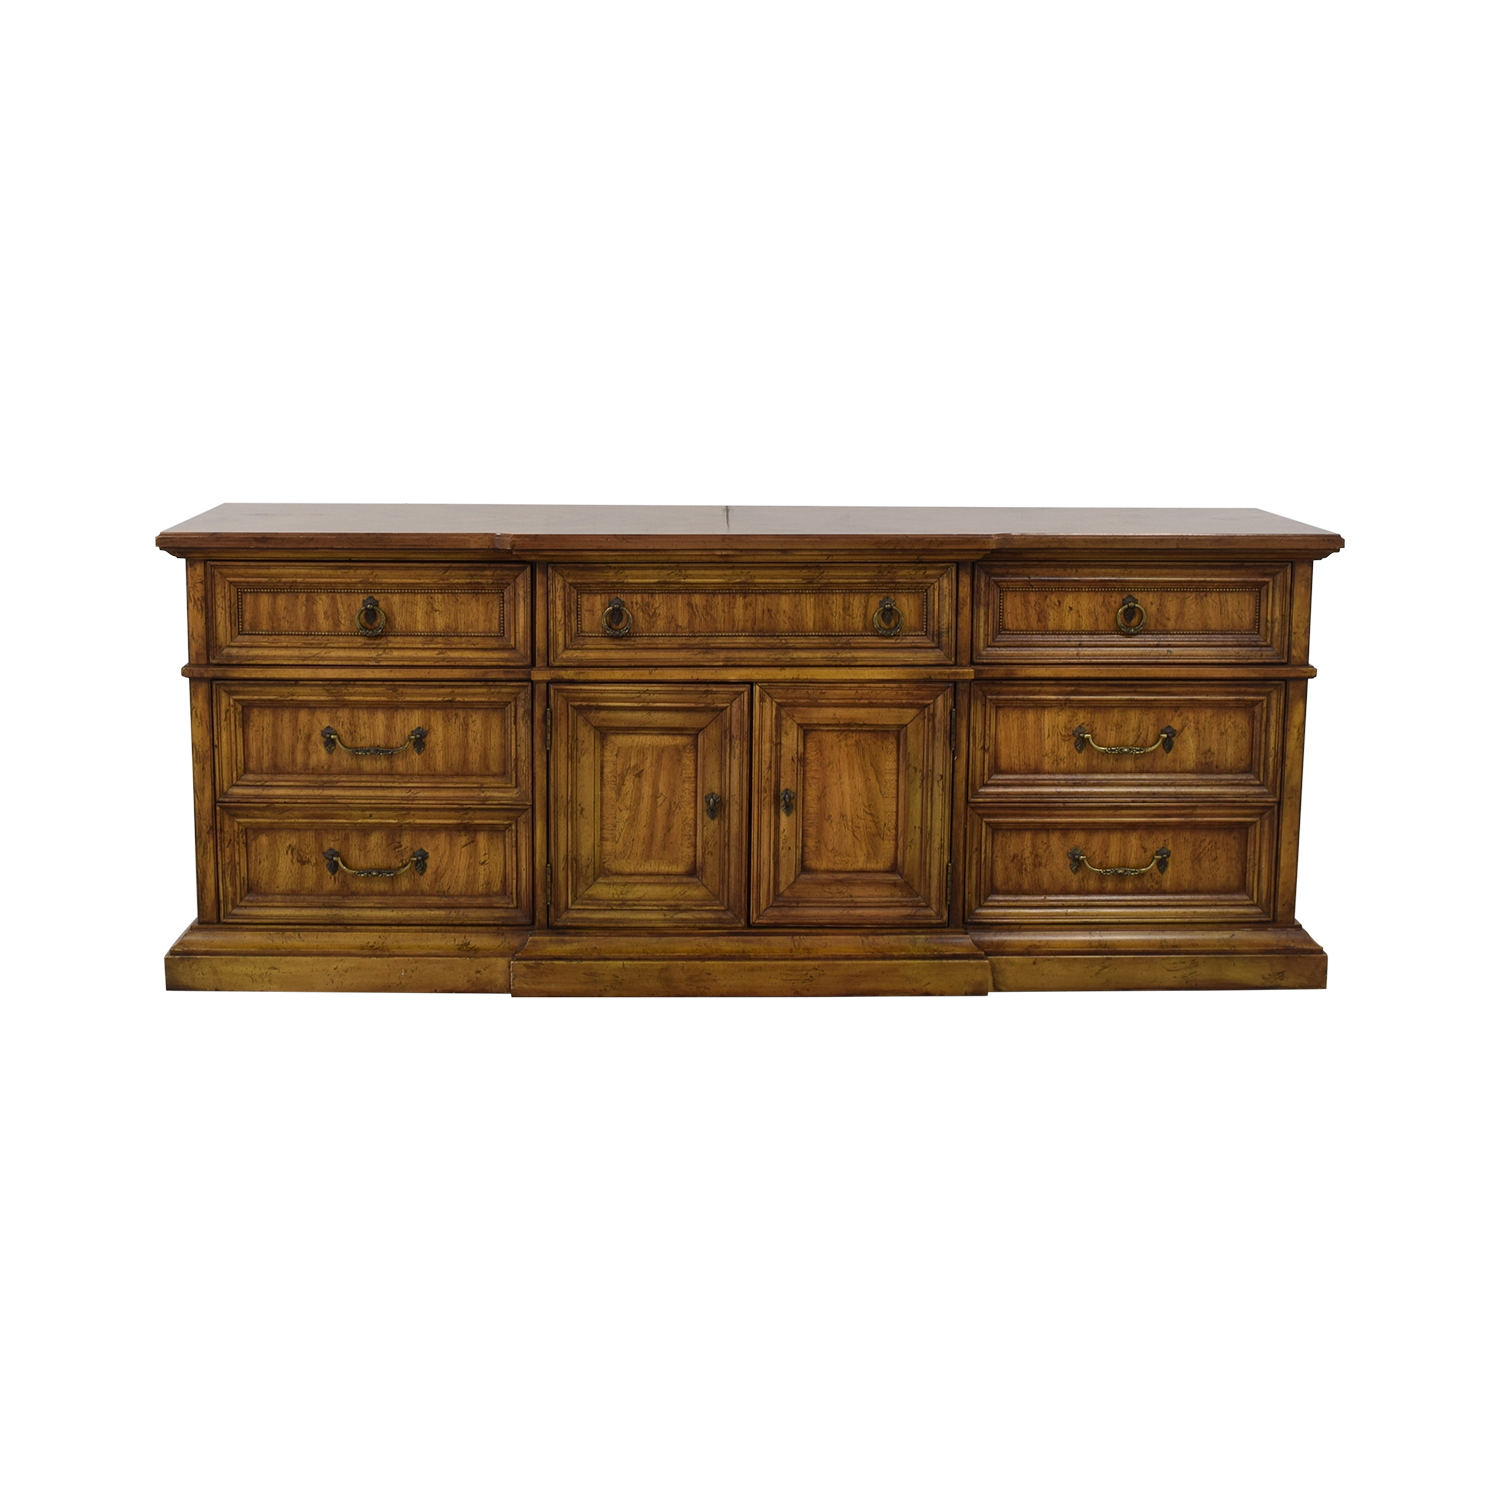 Stanley Furniture Stanley Furniture Cabinet and Dresser coupon